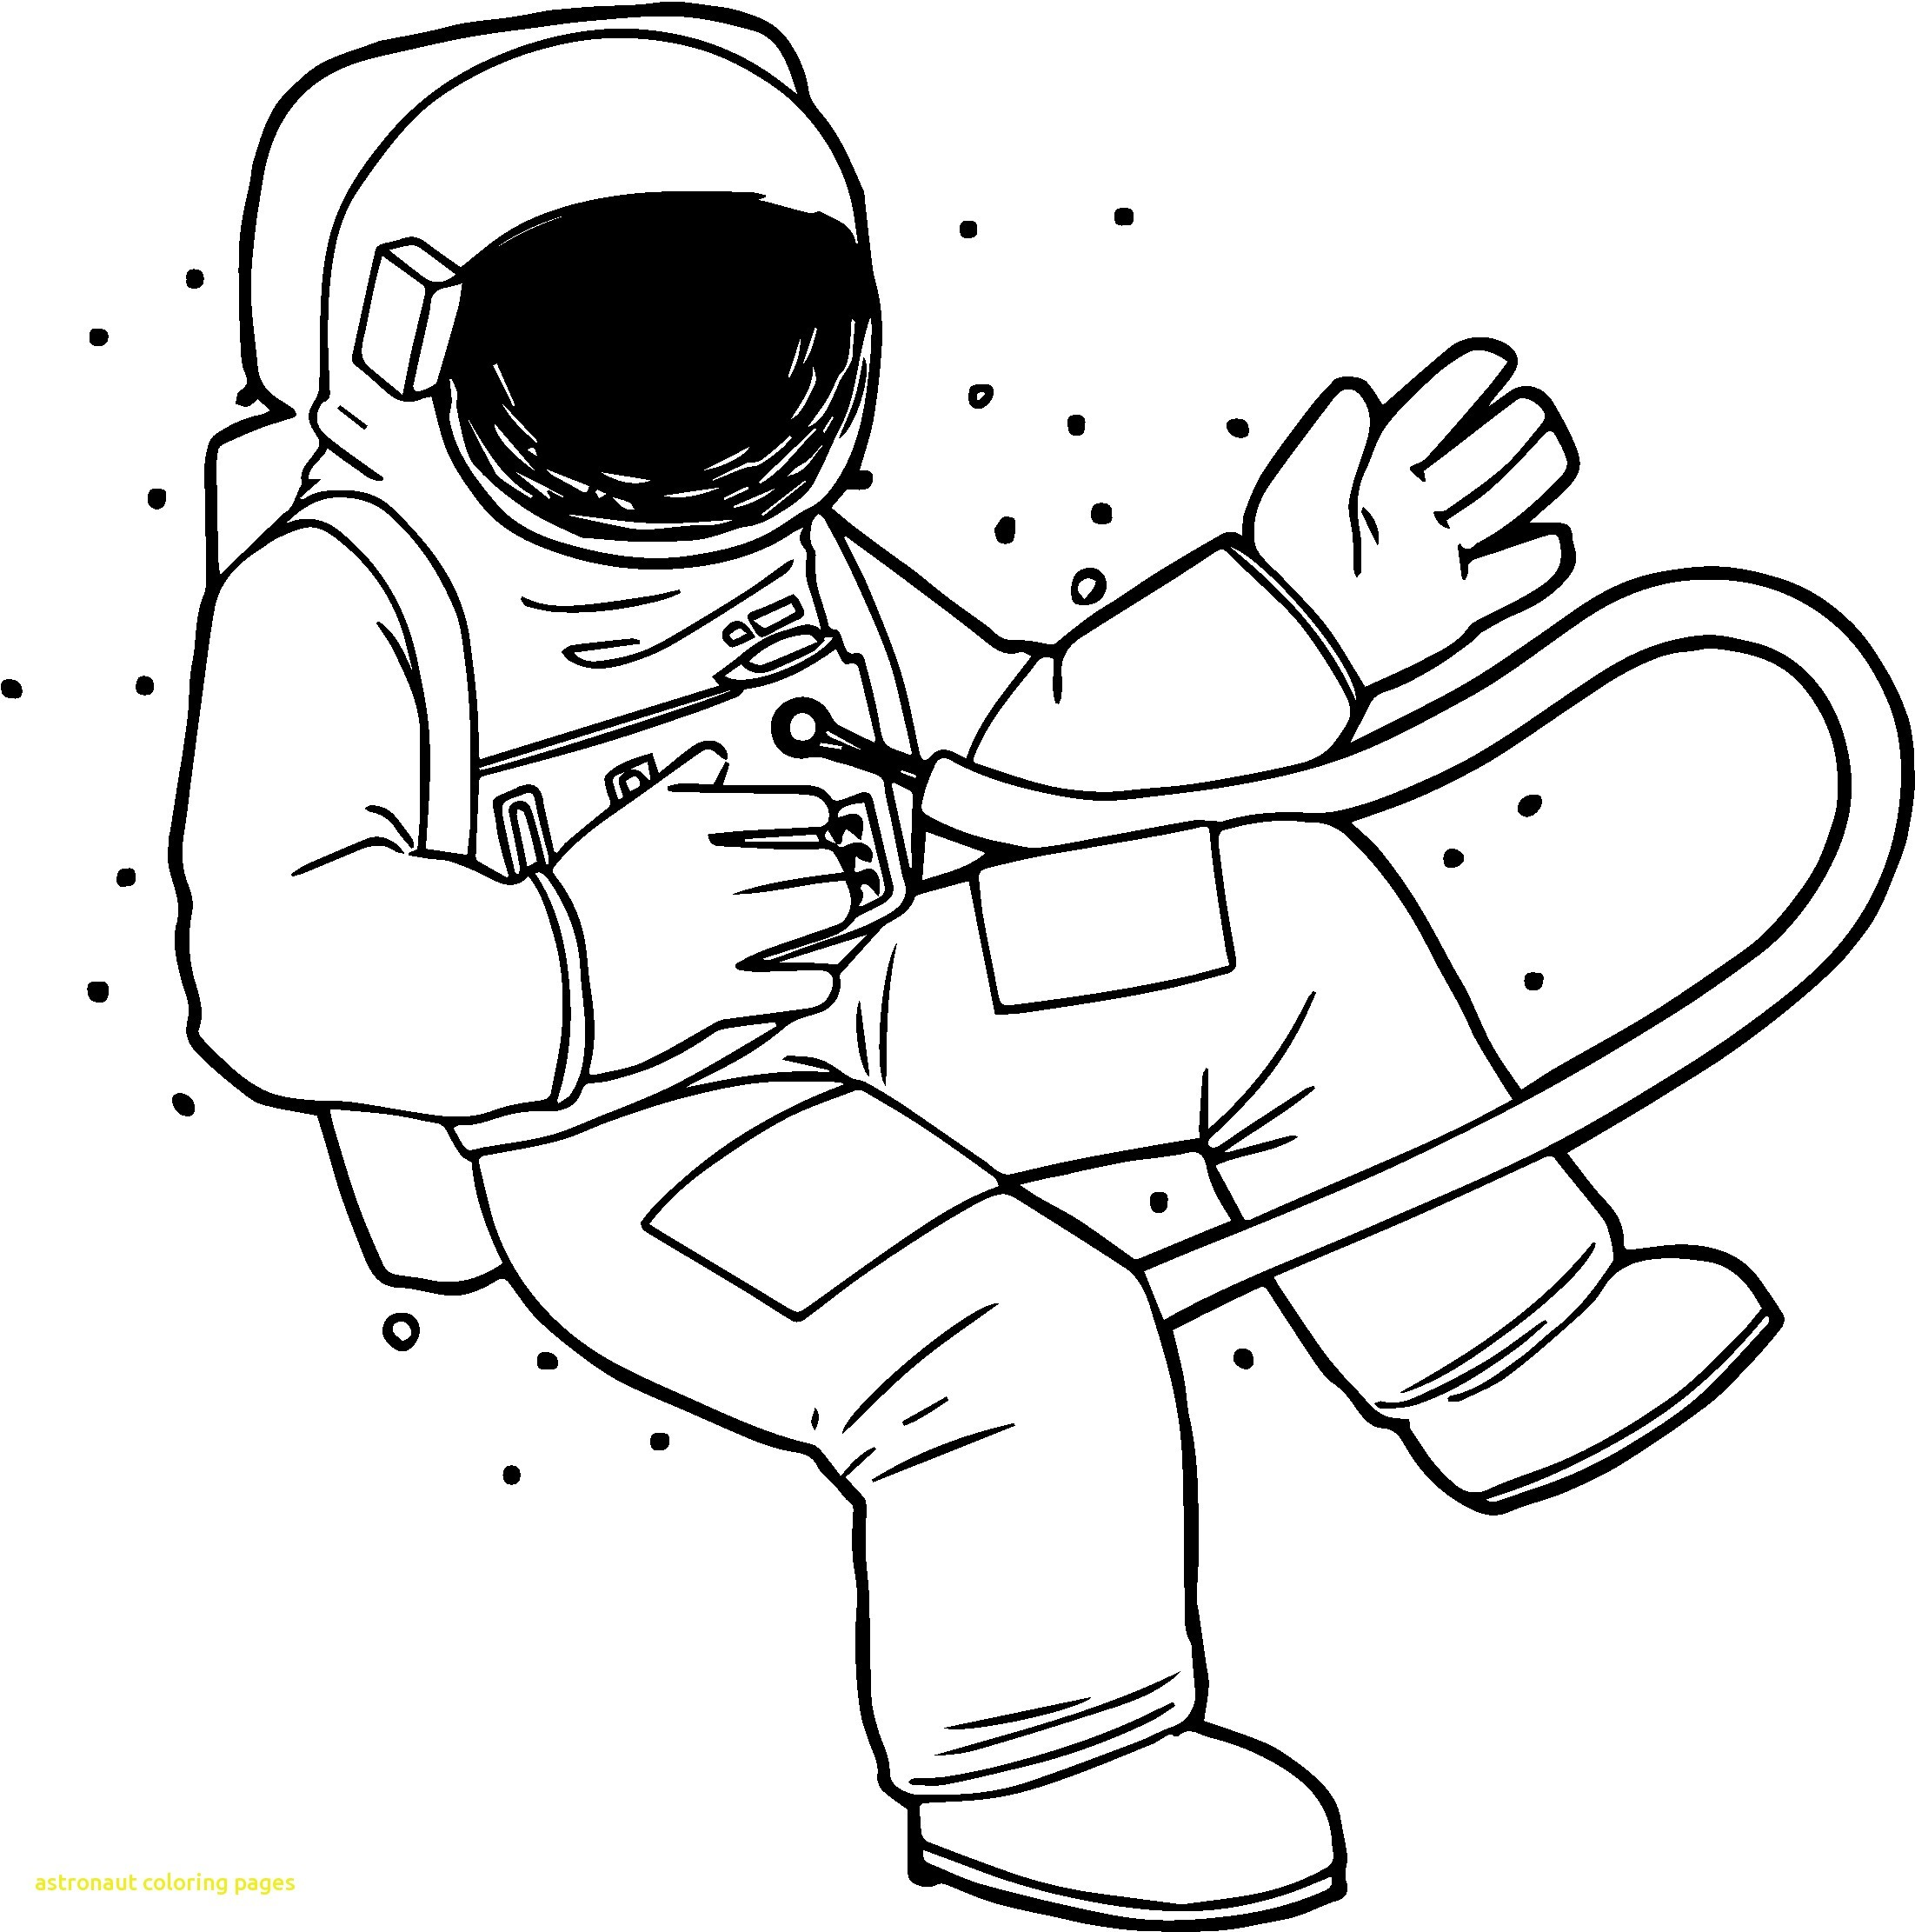 coloring picture of astronaut free printable astronaut coloring pages for kids coloring picture astronaut of